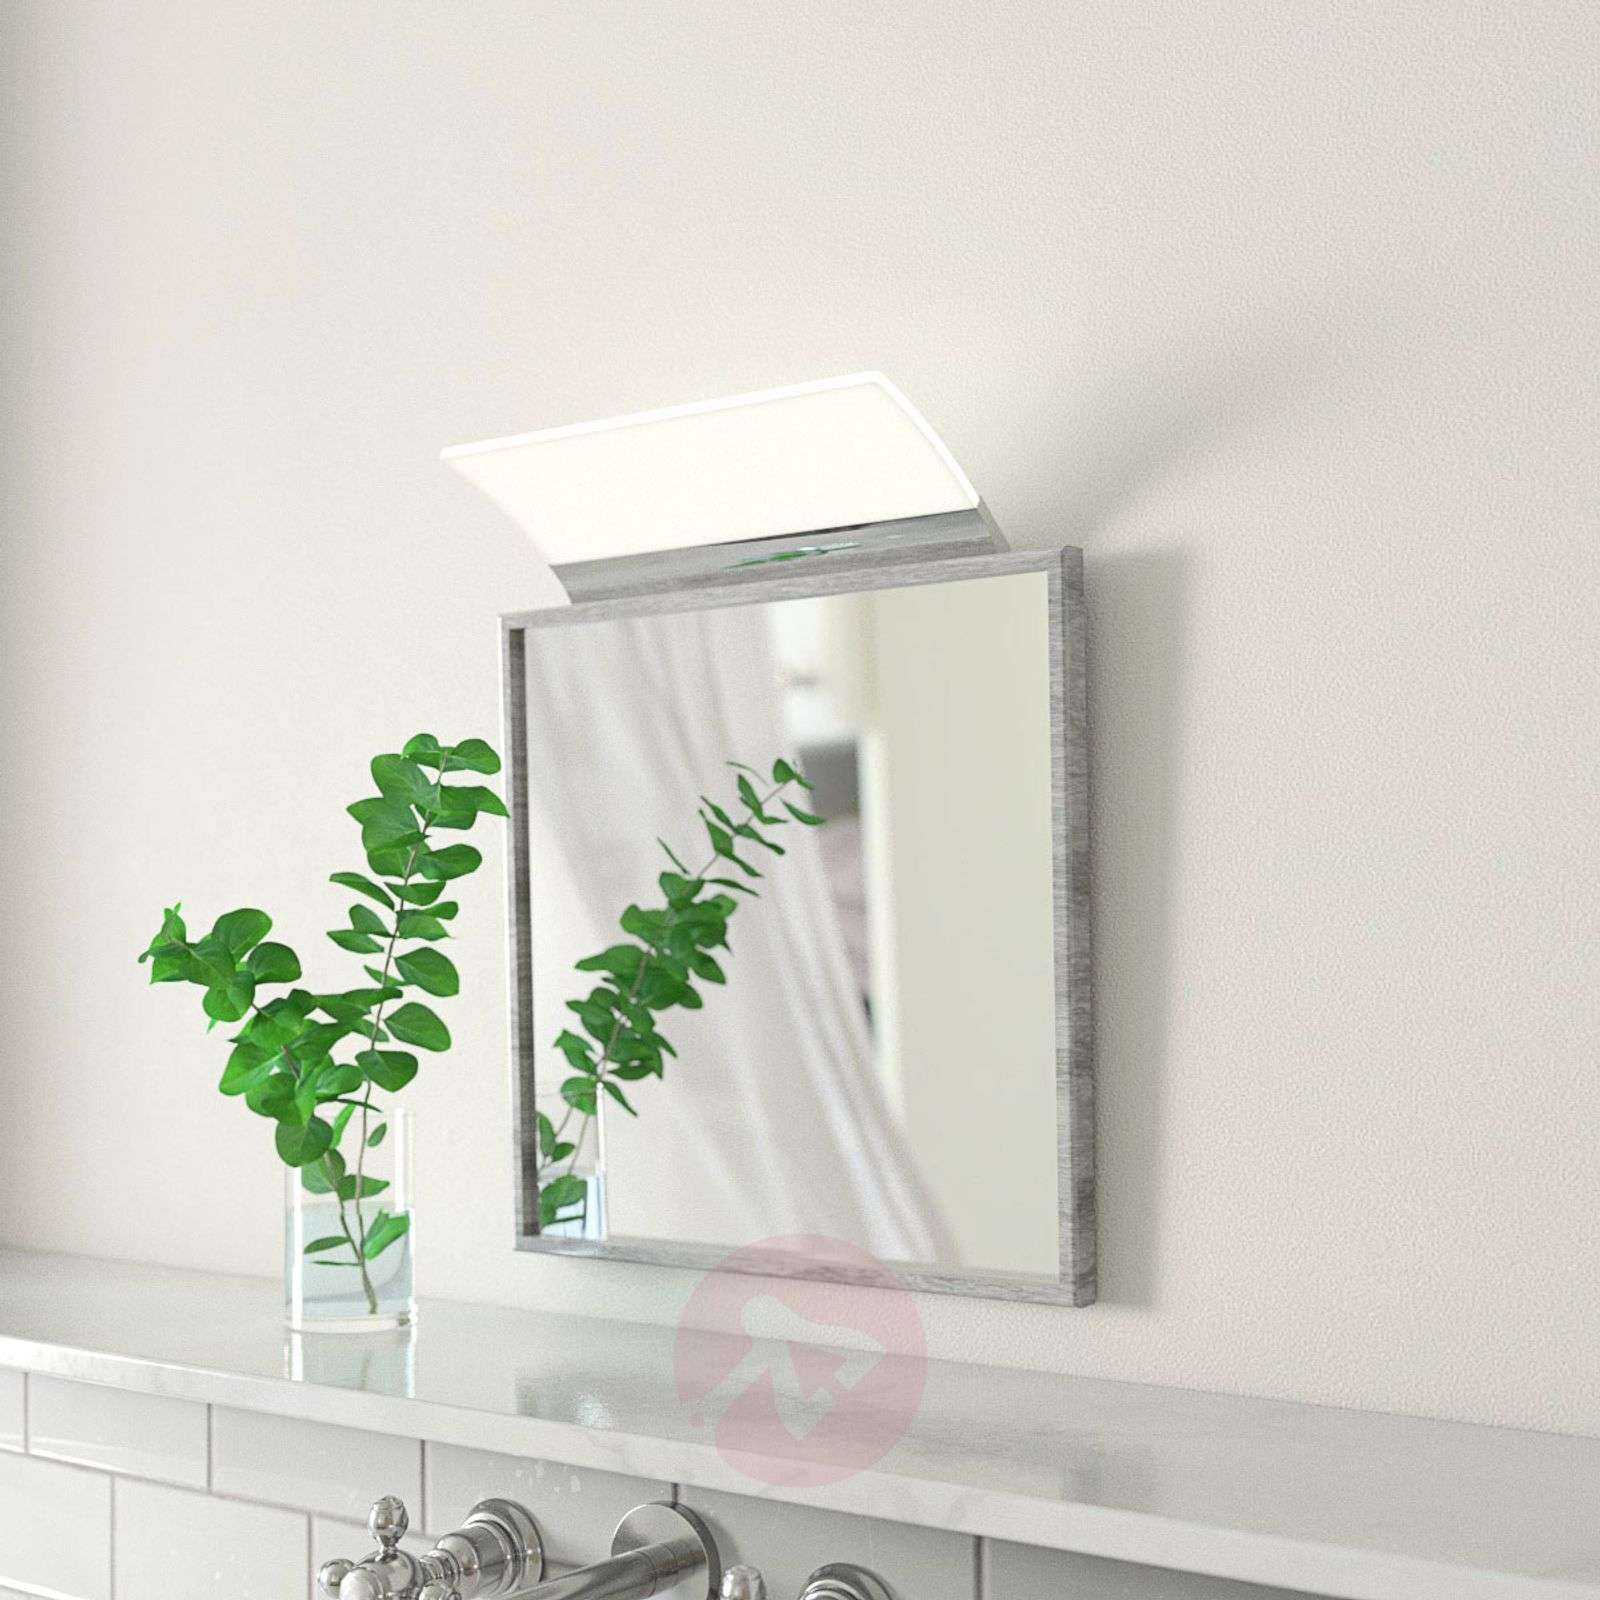 Flat LED mirror light Angela, IP44, 16 cm-3052053-01